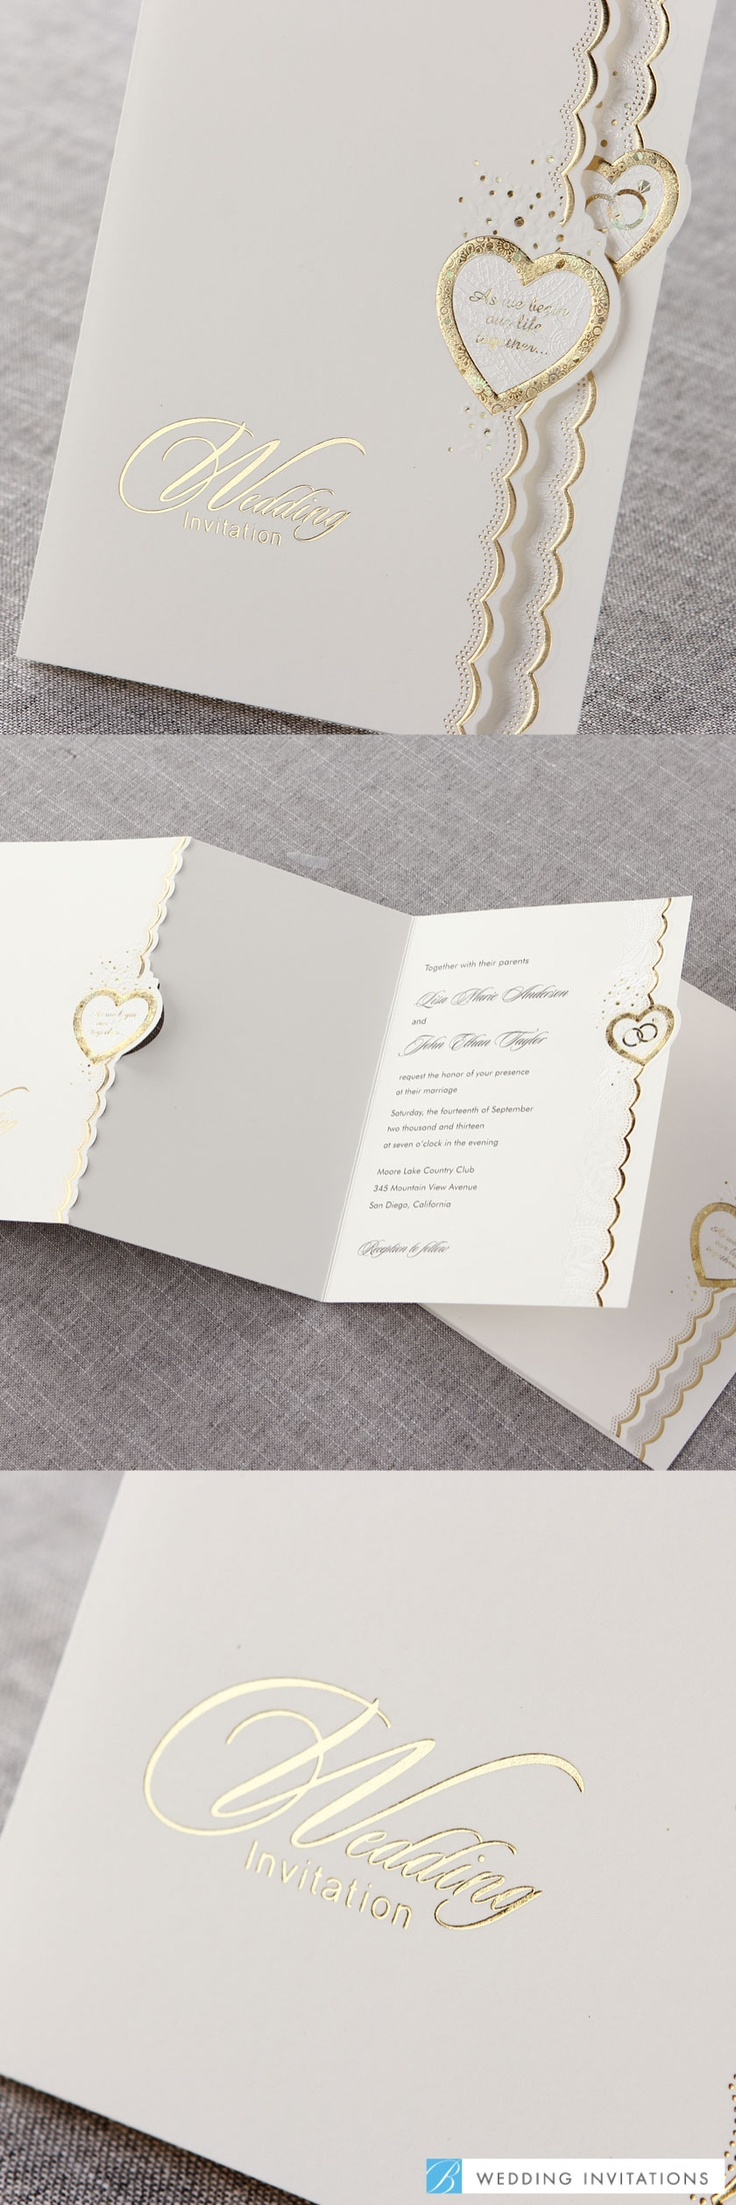 11 Best Mint Wedding Invitations Images On Pinterest Mint Weddings